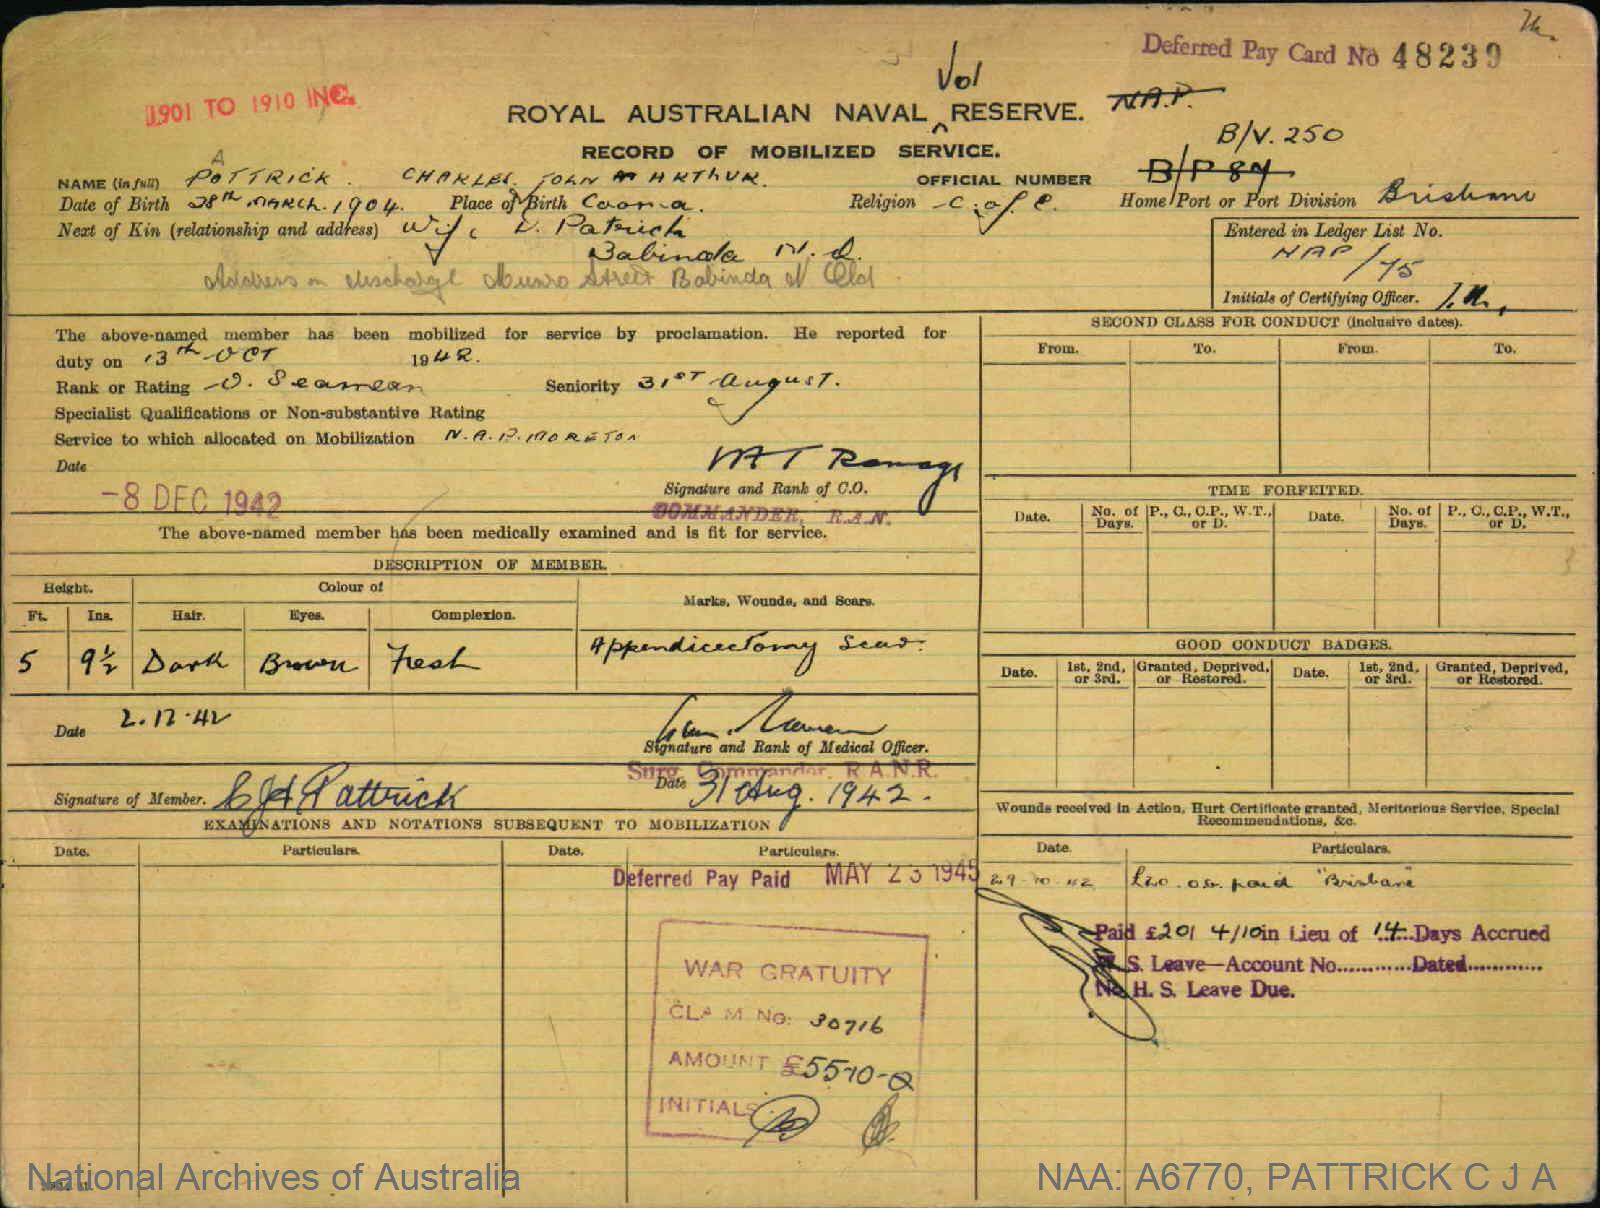 PATTRICK CHARLES JOHN ARTHUR : Service Number - B/V250 : Date of birth - 28 Mar 1904 : Place of birth - COOMA : Place of enlistment - BRISBANE QLD : Next of Kin - PATTRICK D